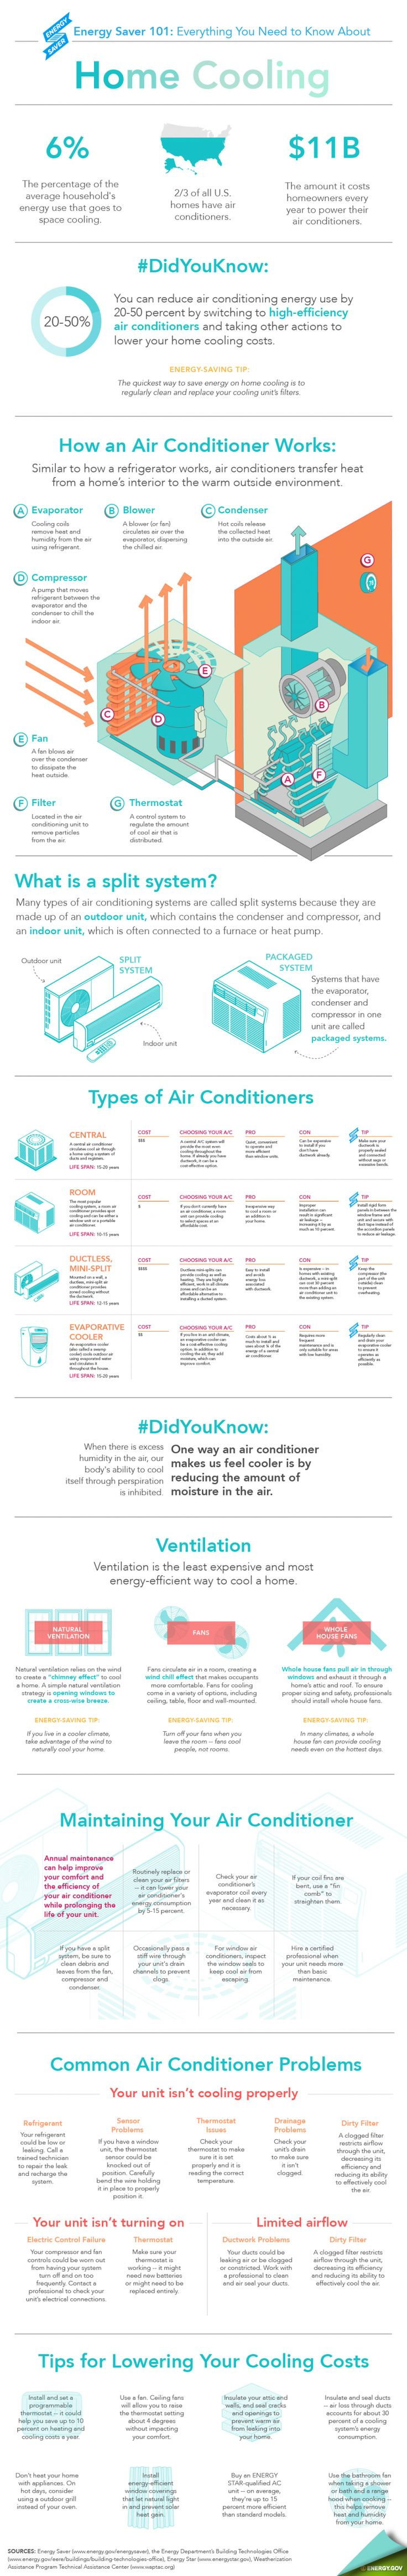 Just in time for summer, our new Energy Saver 101 infographic covers everything you need to know about home cooling.